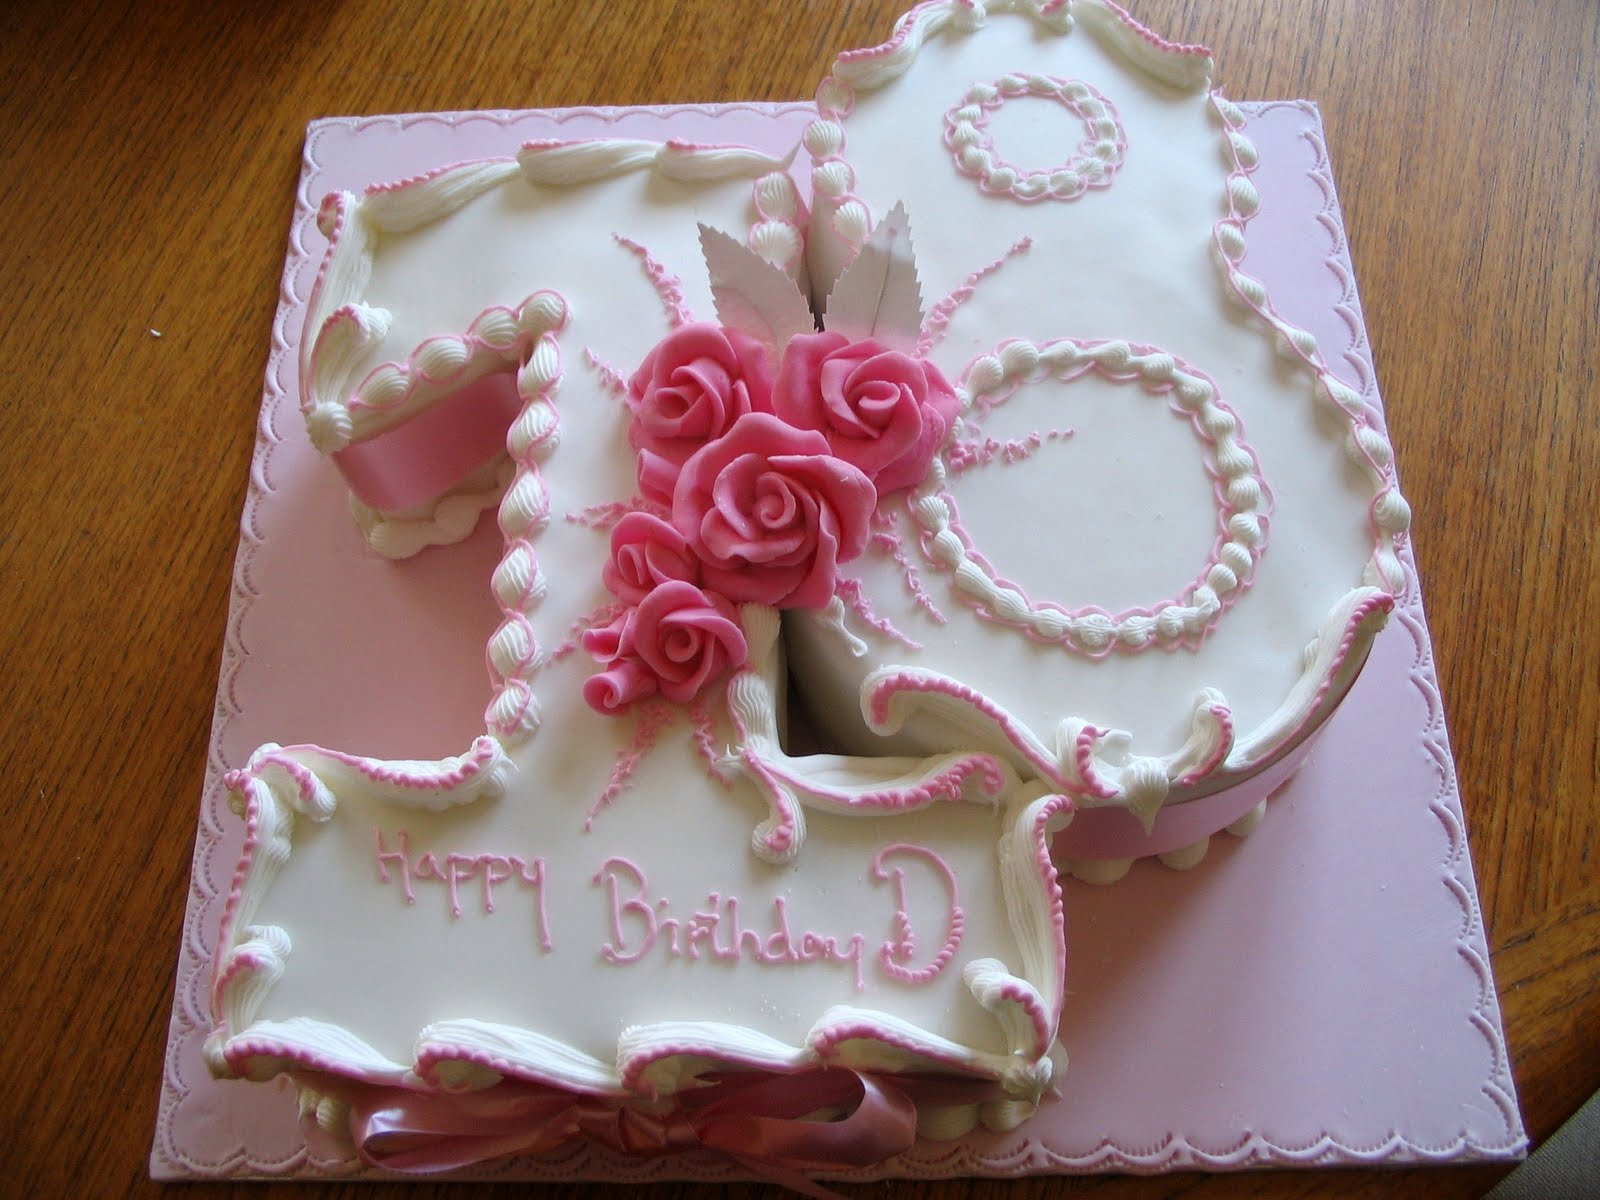 Birthday cake birthday cakes for girls 18th for 18th birthday decoration ideas for girls